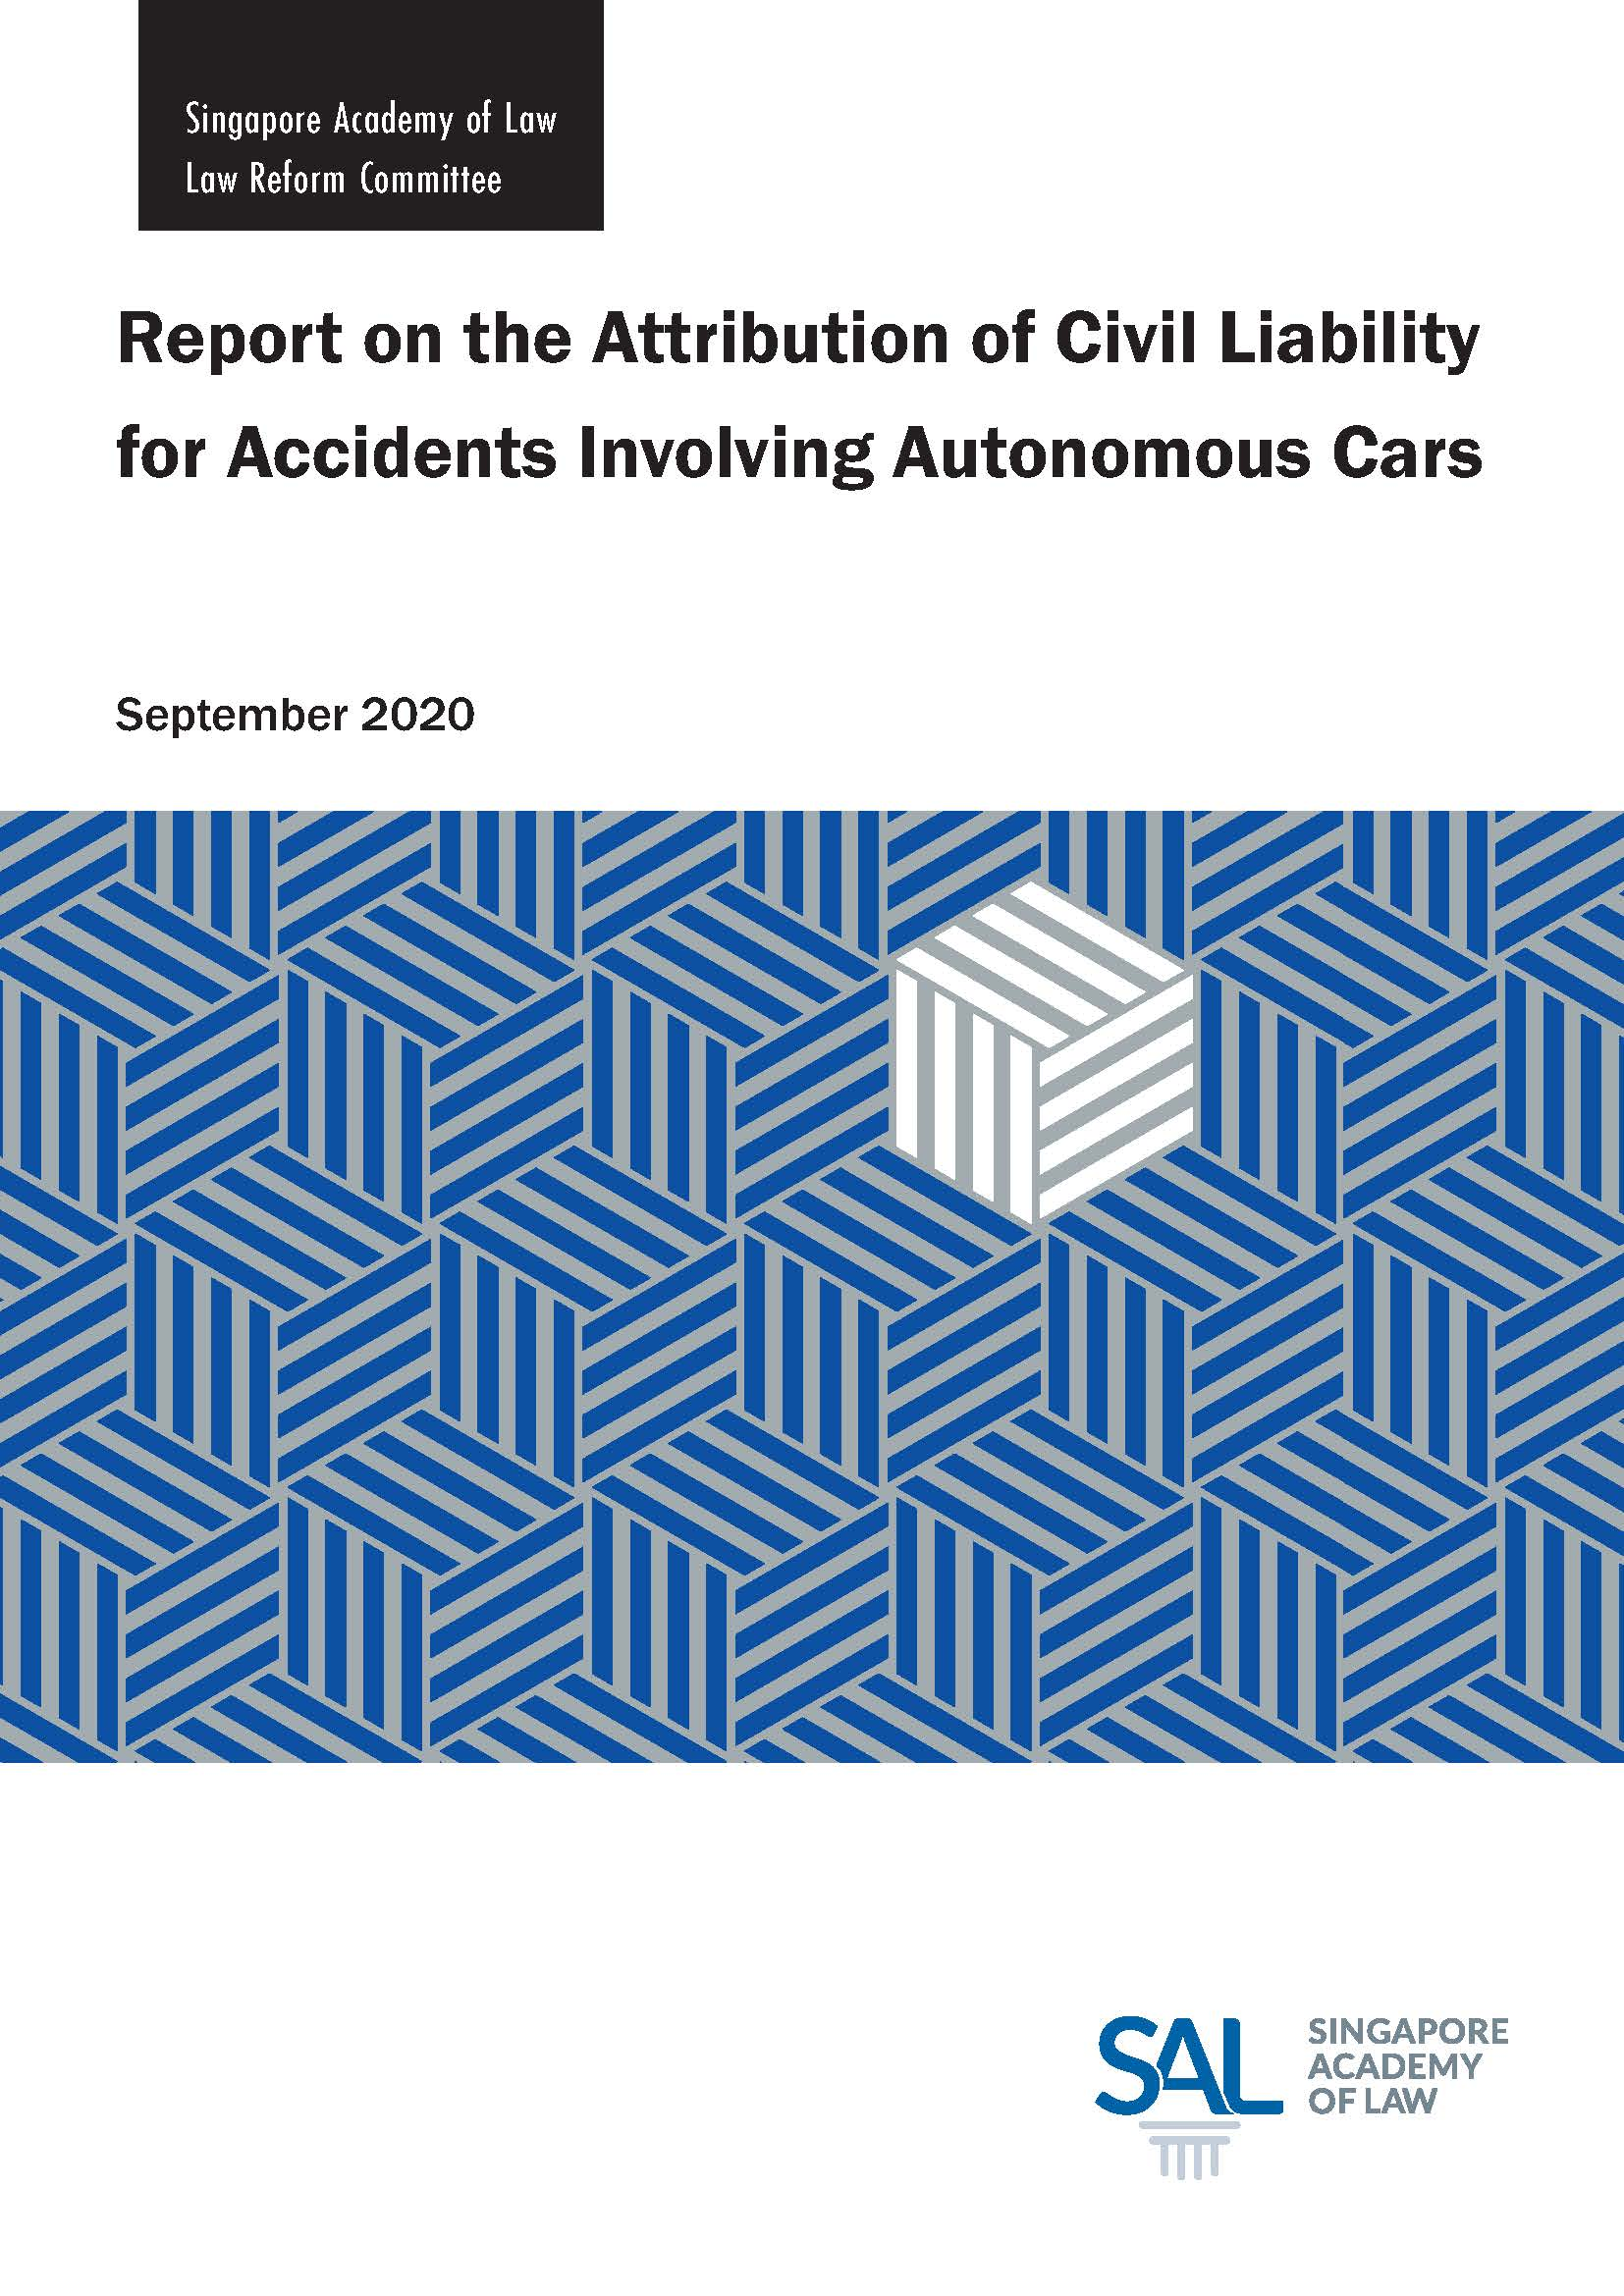 2020 Report on the Attribution of Civil Liability for Accidents Involving Autonomous Cars